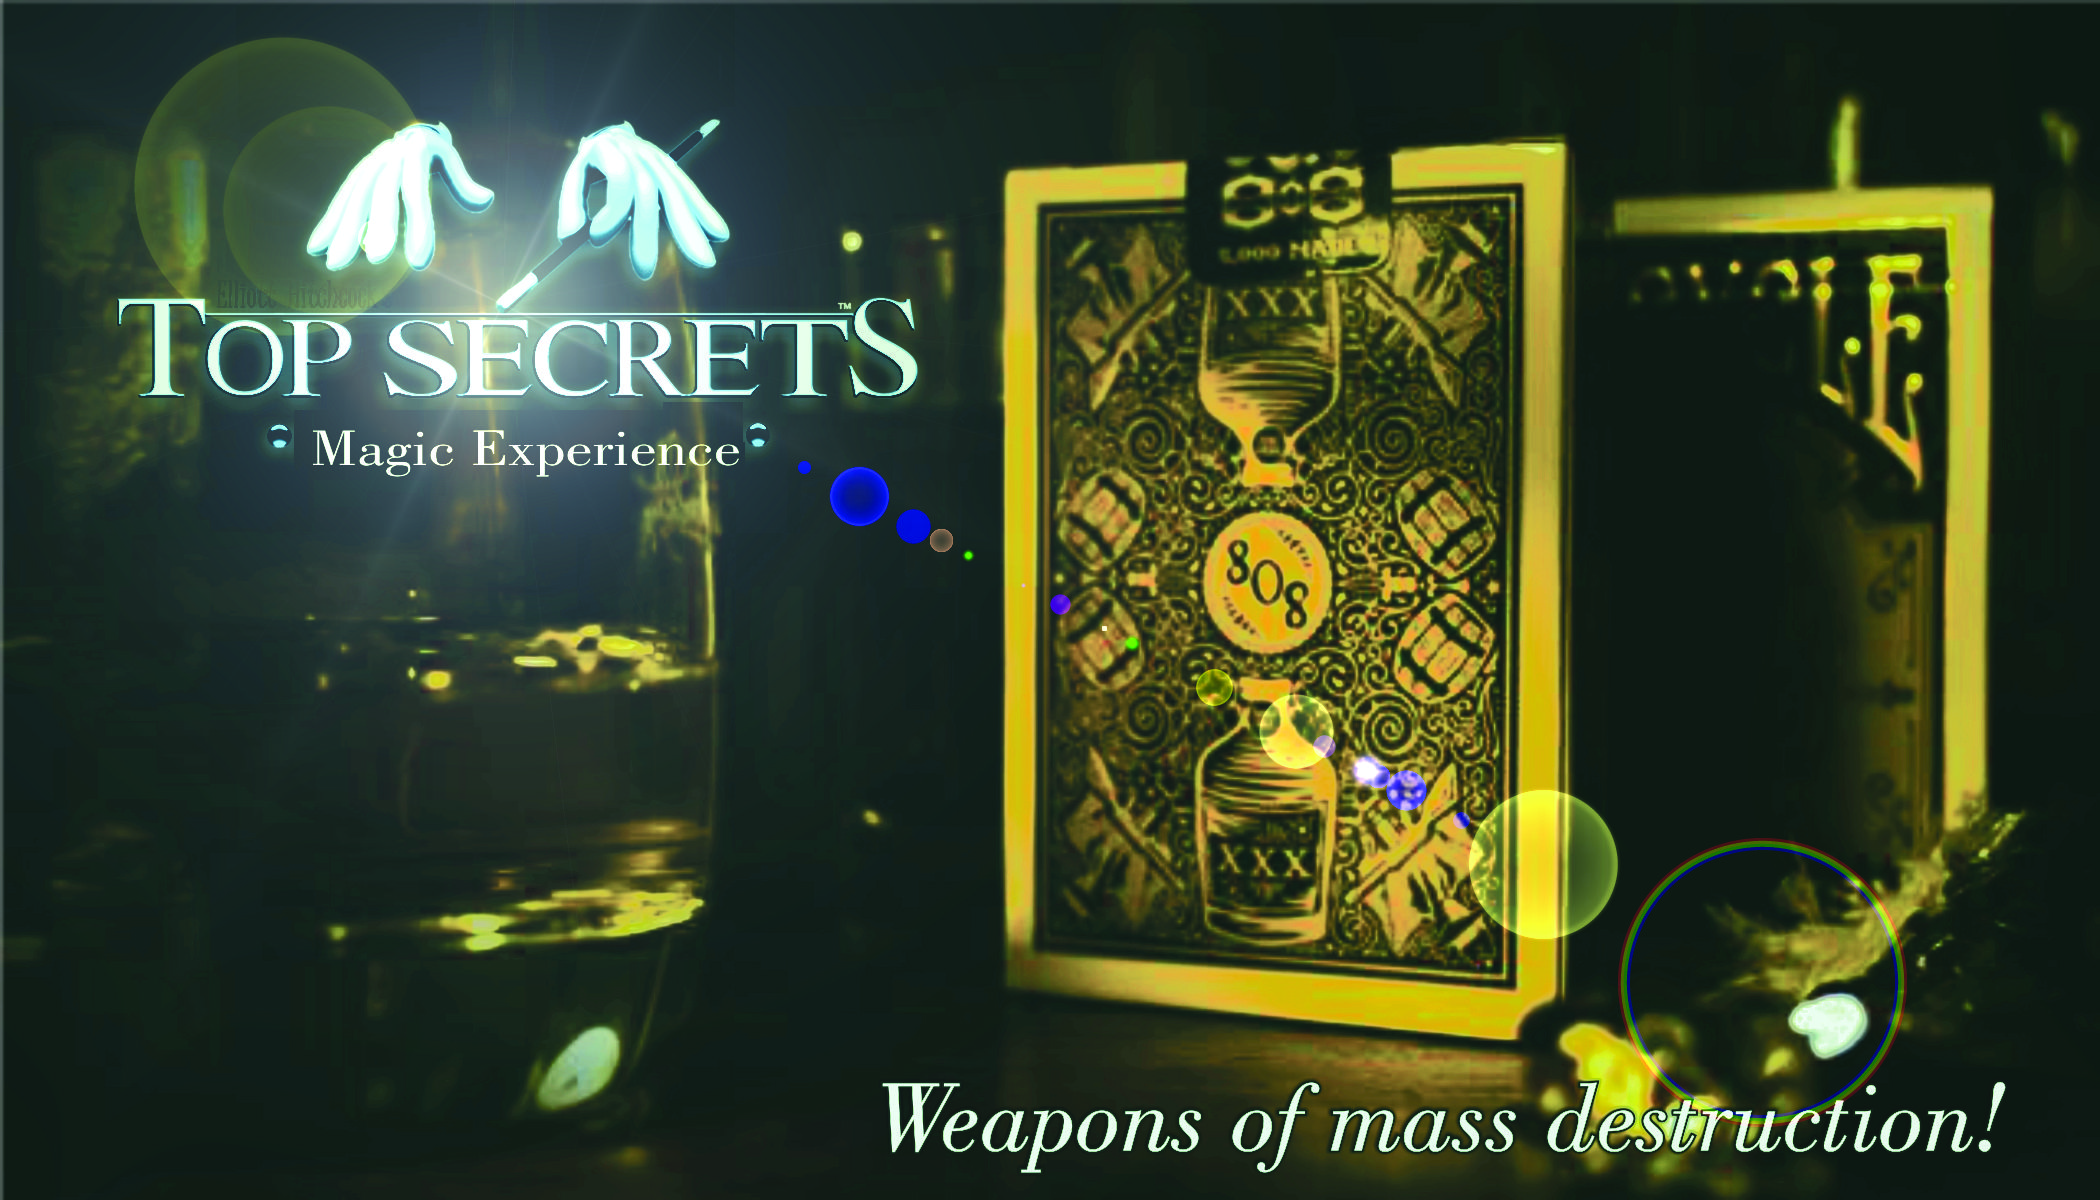 Weapons of mass descruction flat